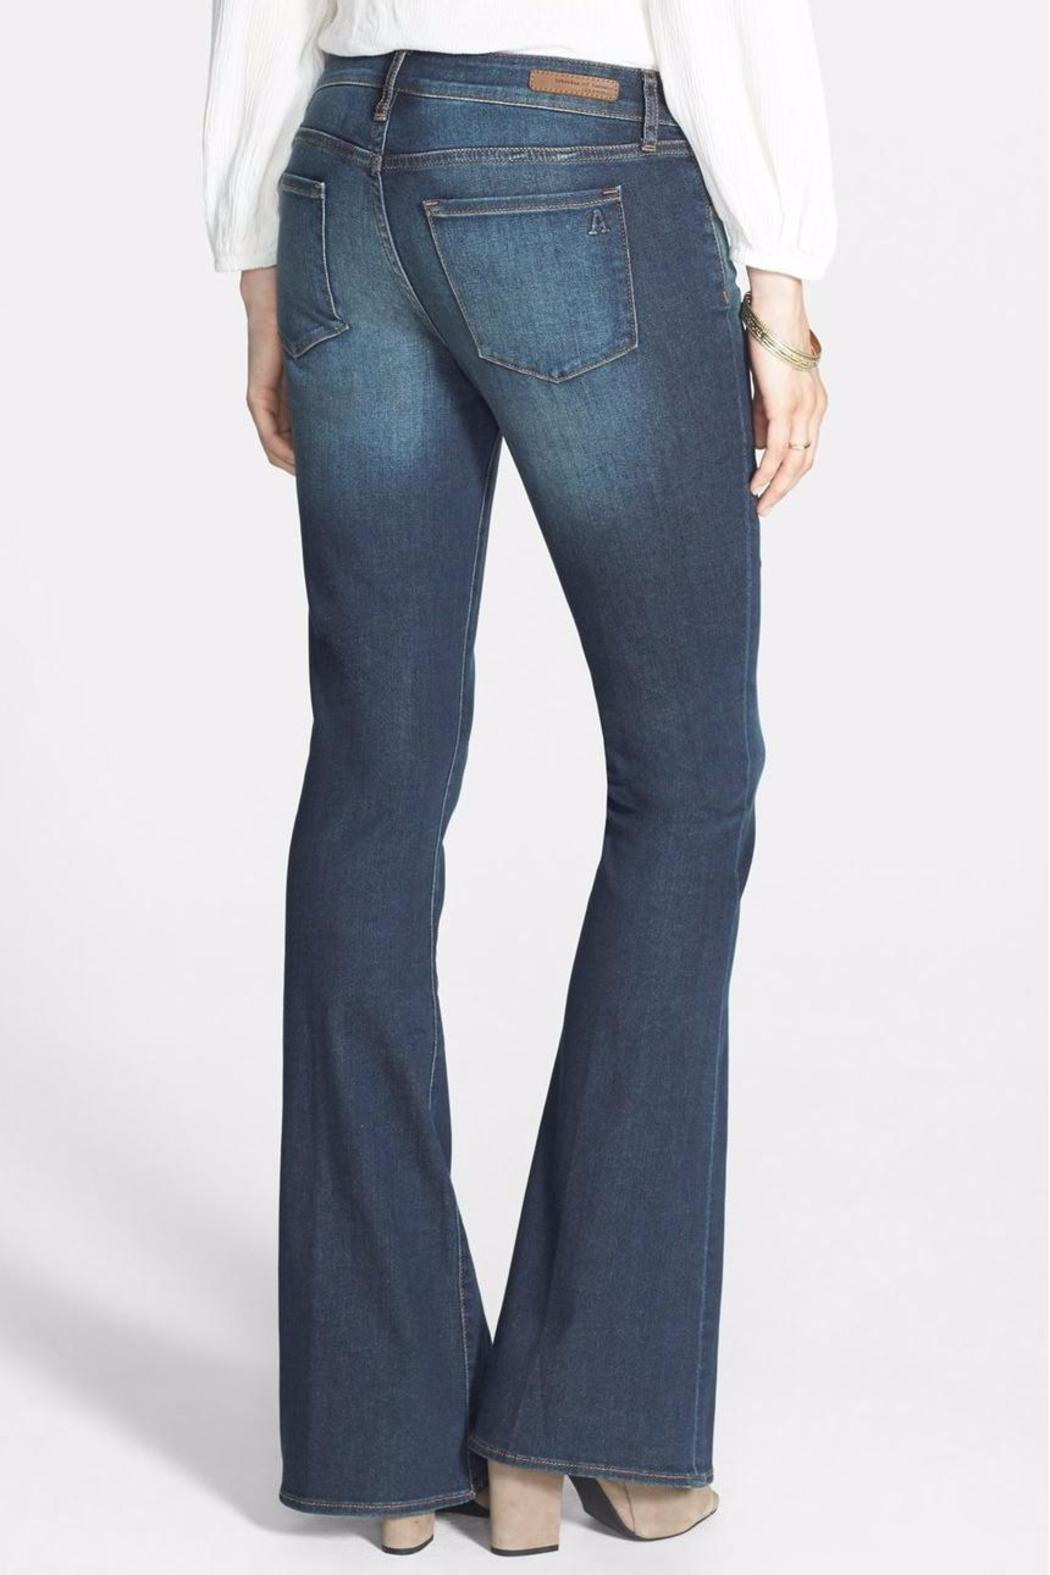 Articles of Society Faith Flare Jeans - Front Full Image